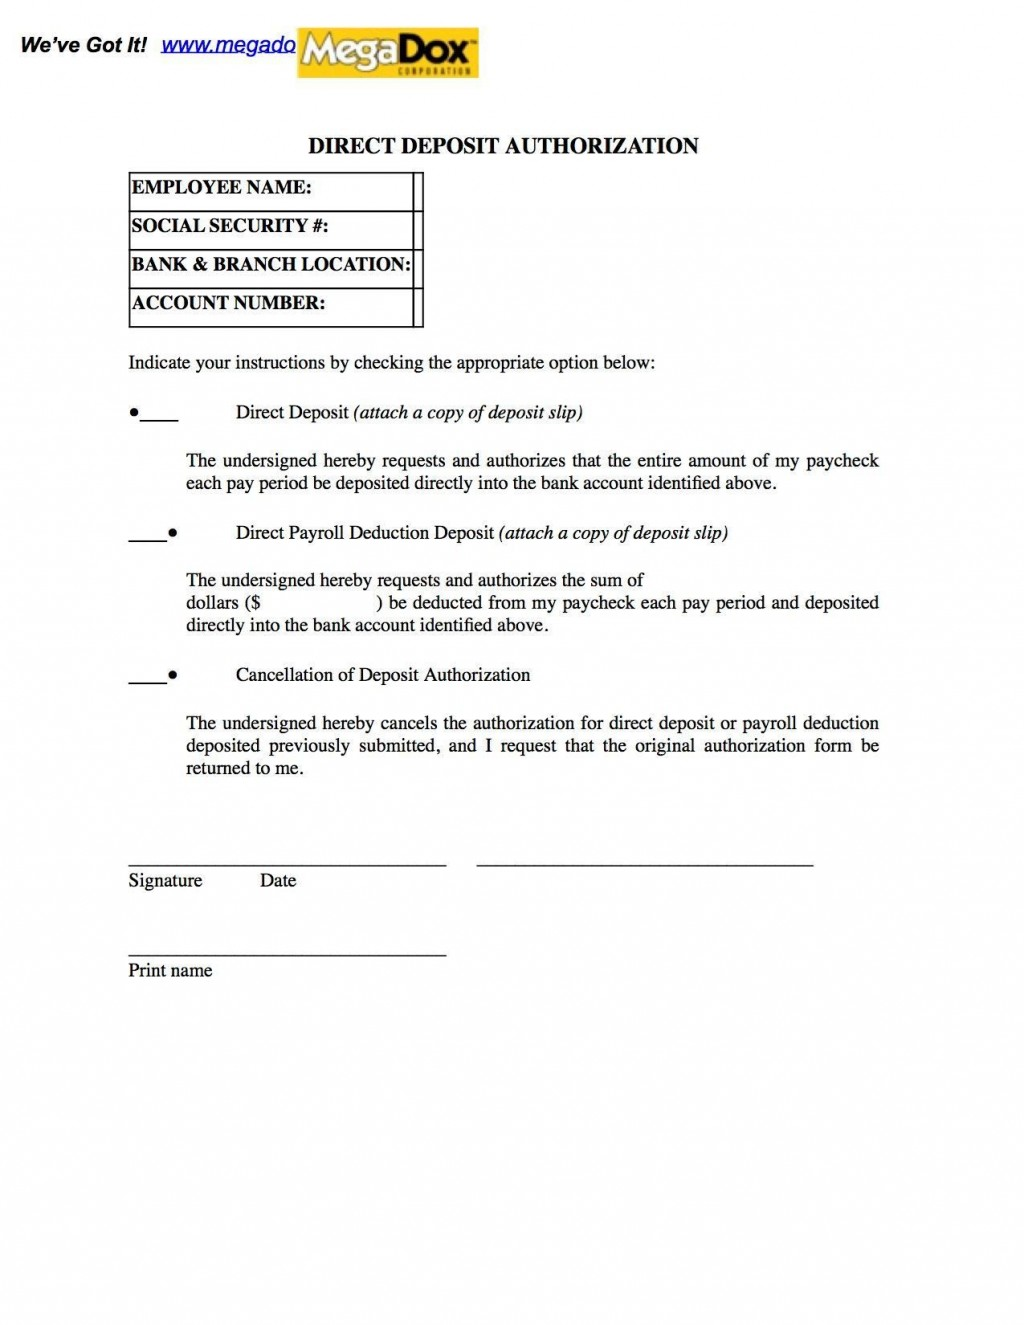 003 Beautiful Direct Deposit Cancellation Form Template Highest Quality  Authorization Canada Word PayrollLarge